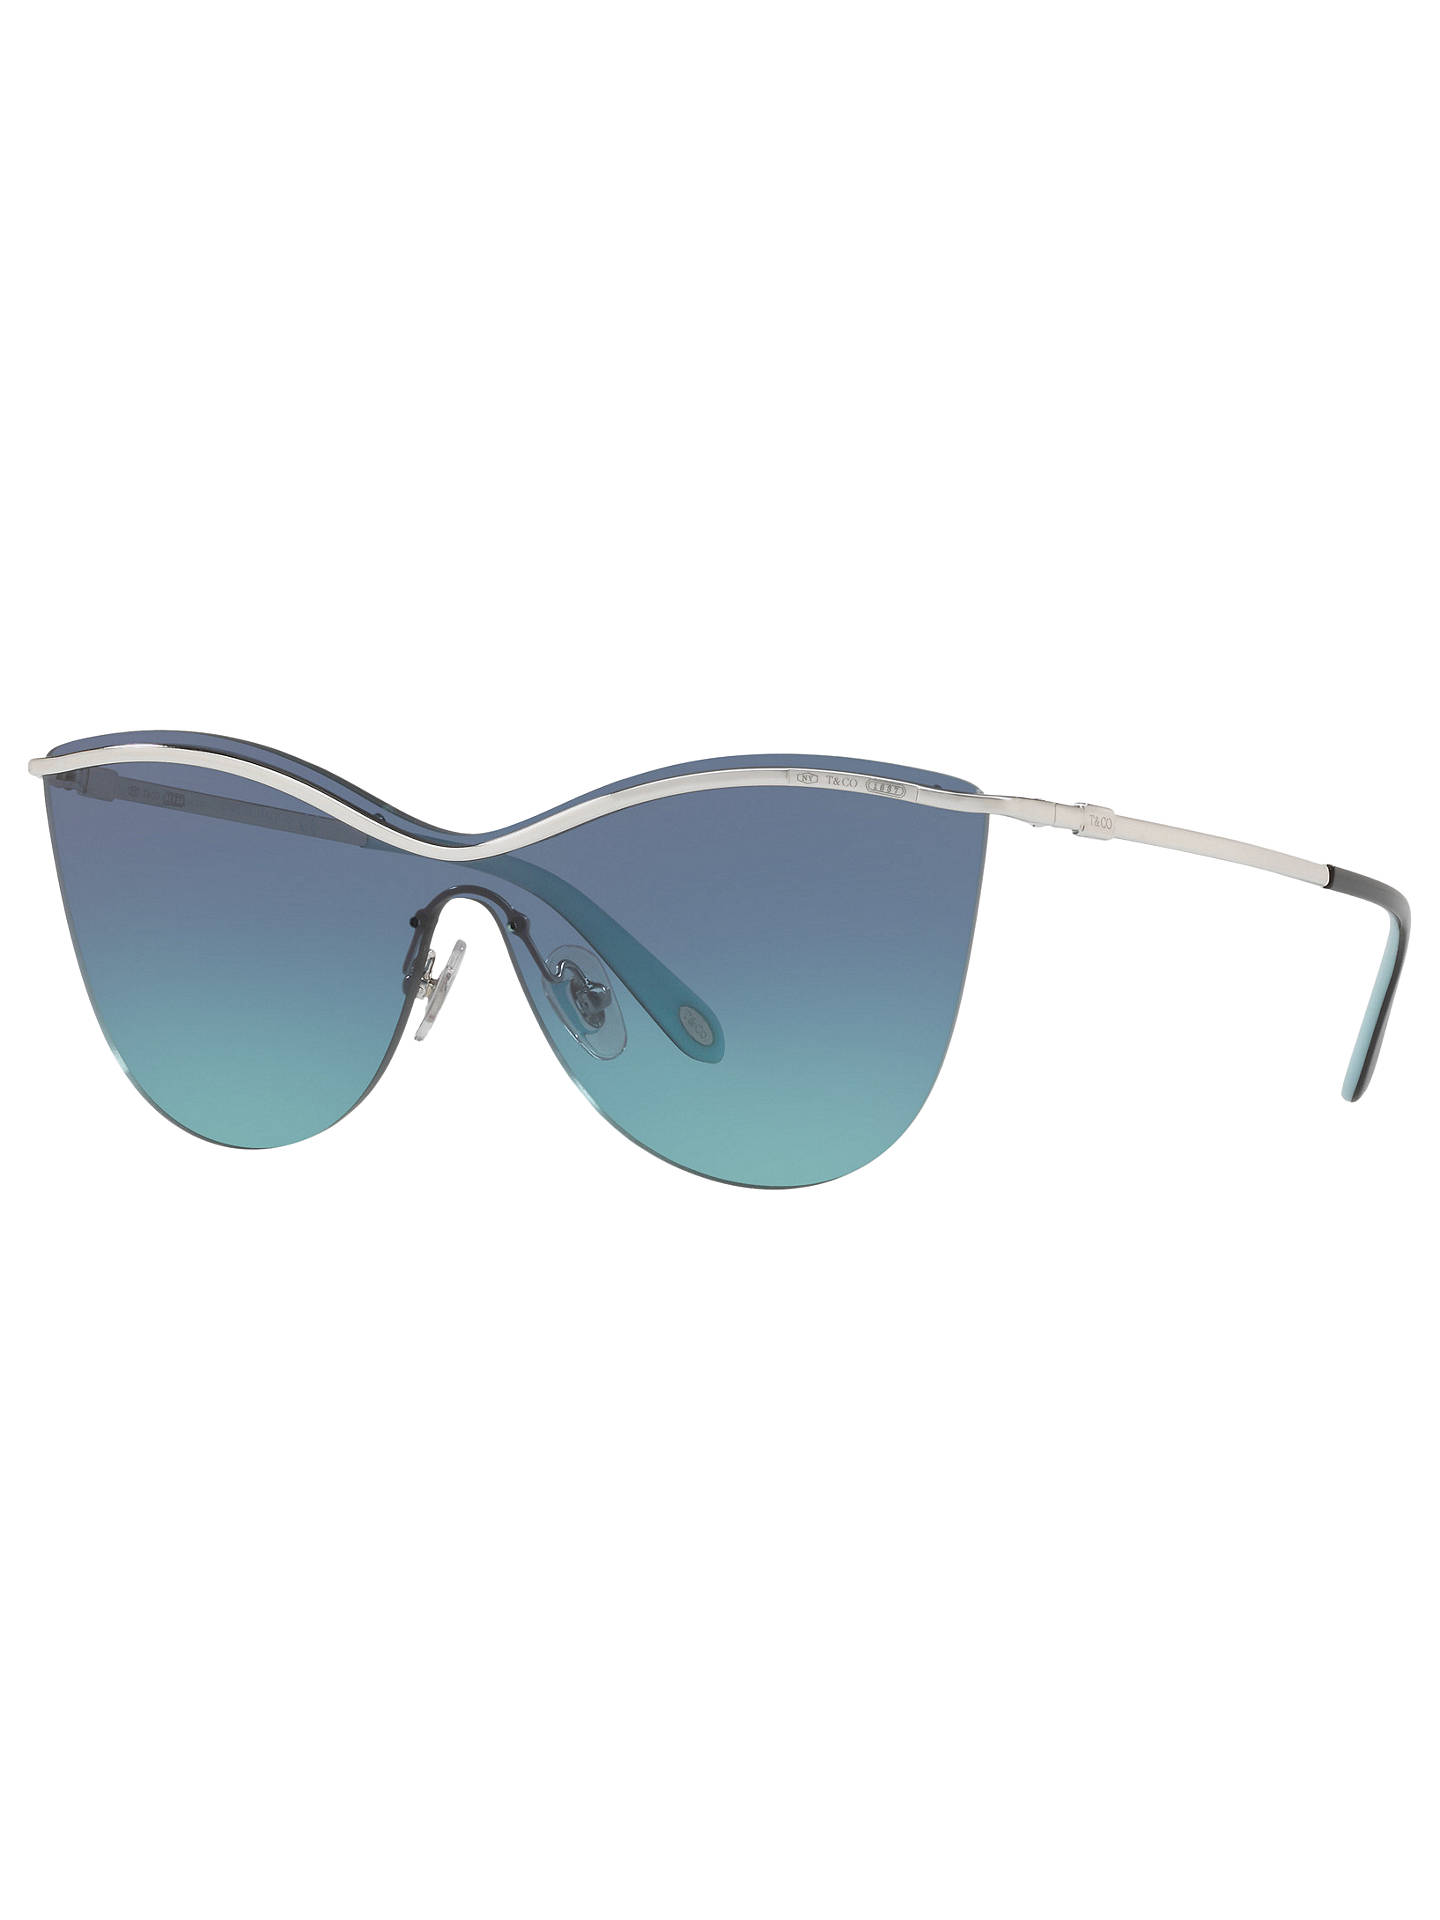 BuyTiffany & Co TF3058 Cat's Eye Sunglasses, Silver/Blue Gradient Online at johnlewis.com